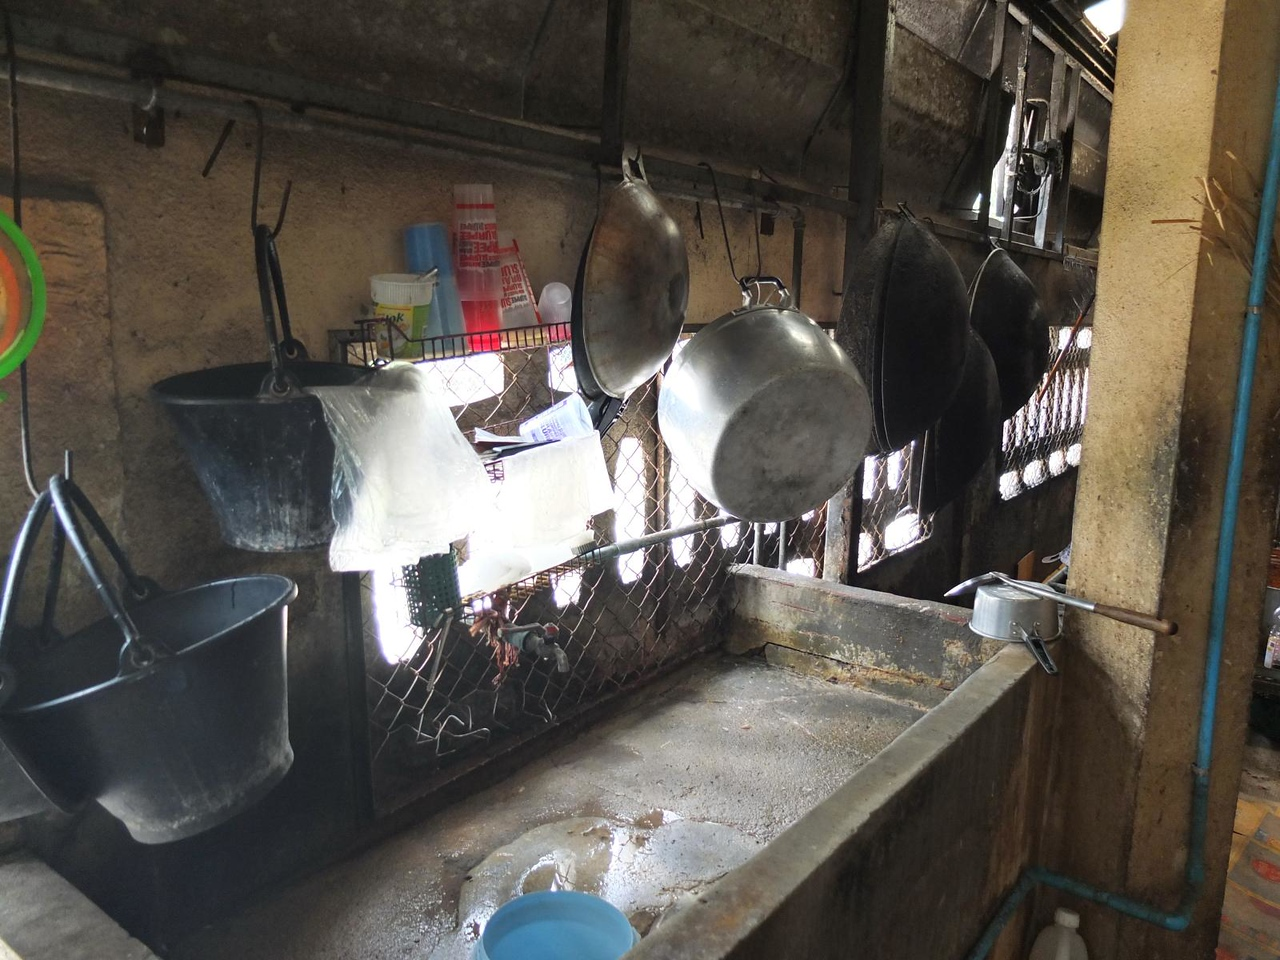 Inside the kitchen